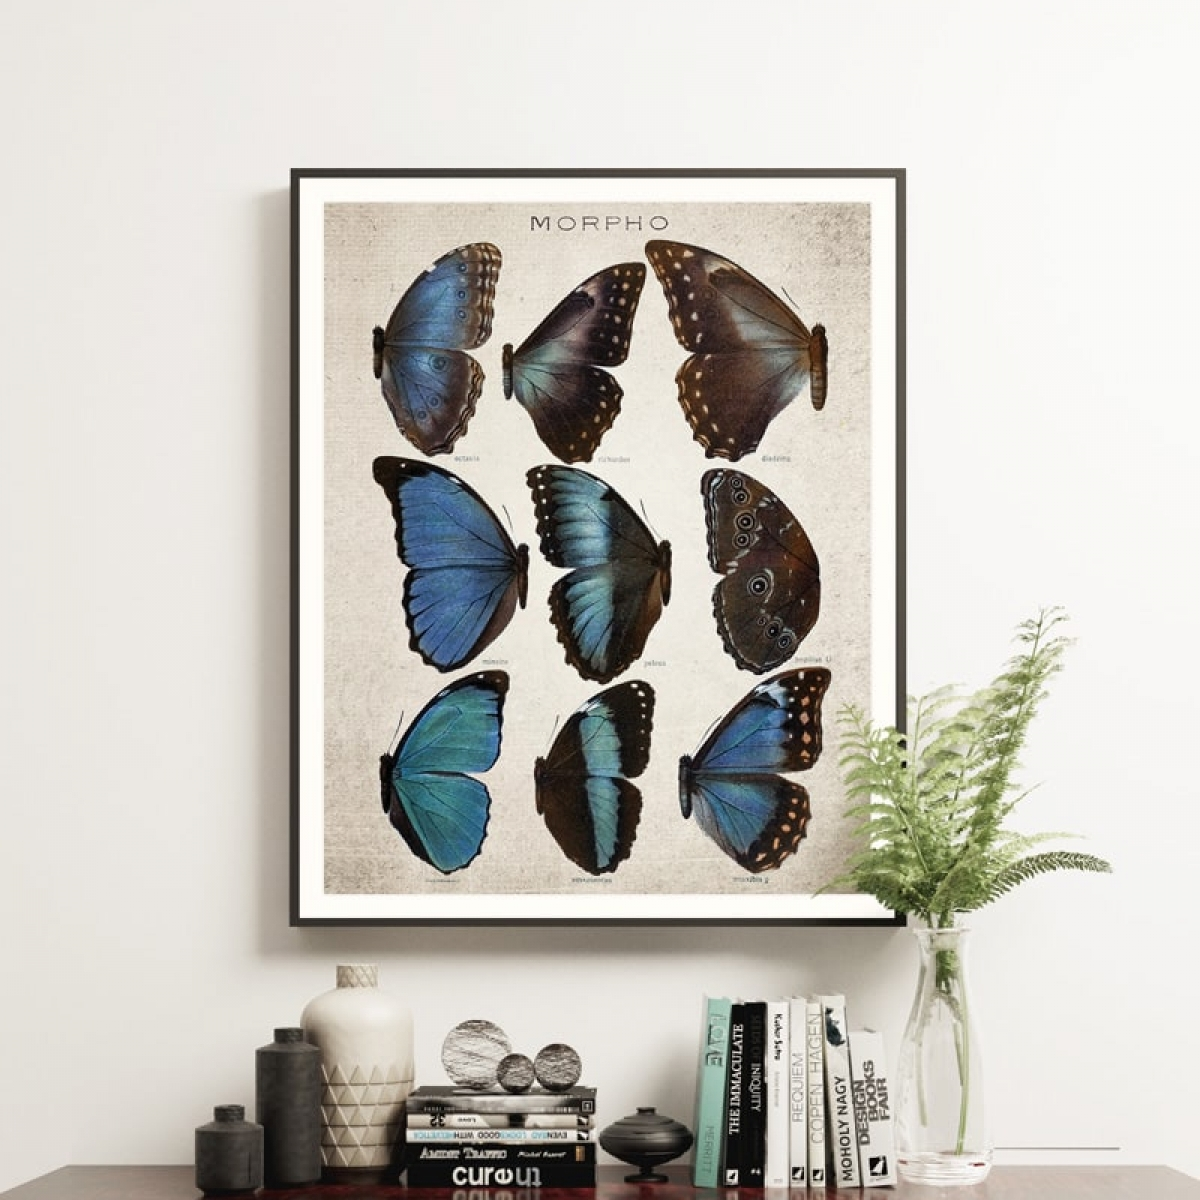 Minibeast Vintage Entomology Giclee Print (Morpho Collection 2 Plate From 1867)